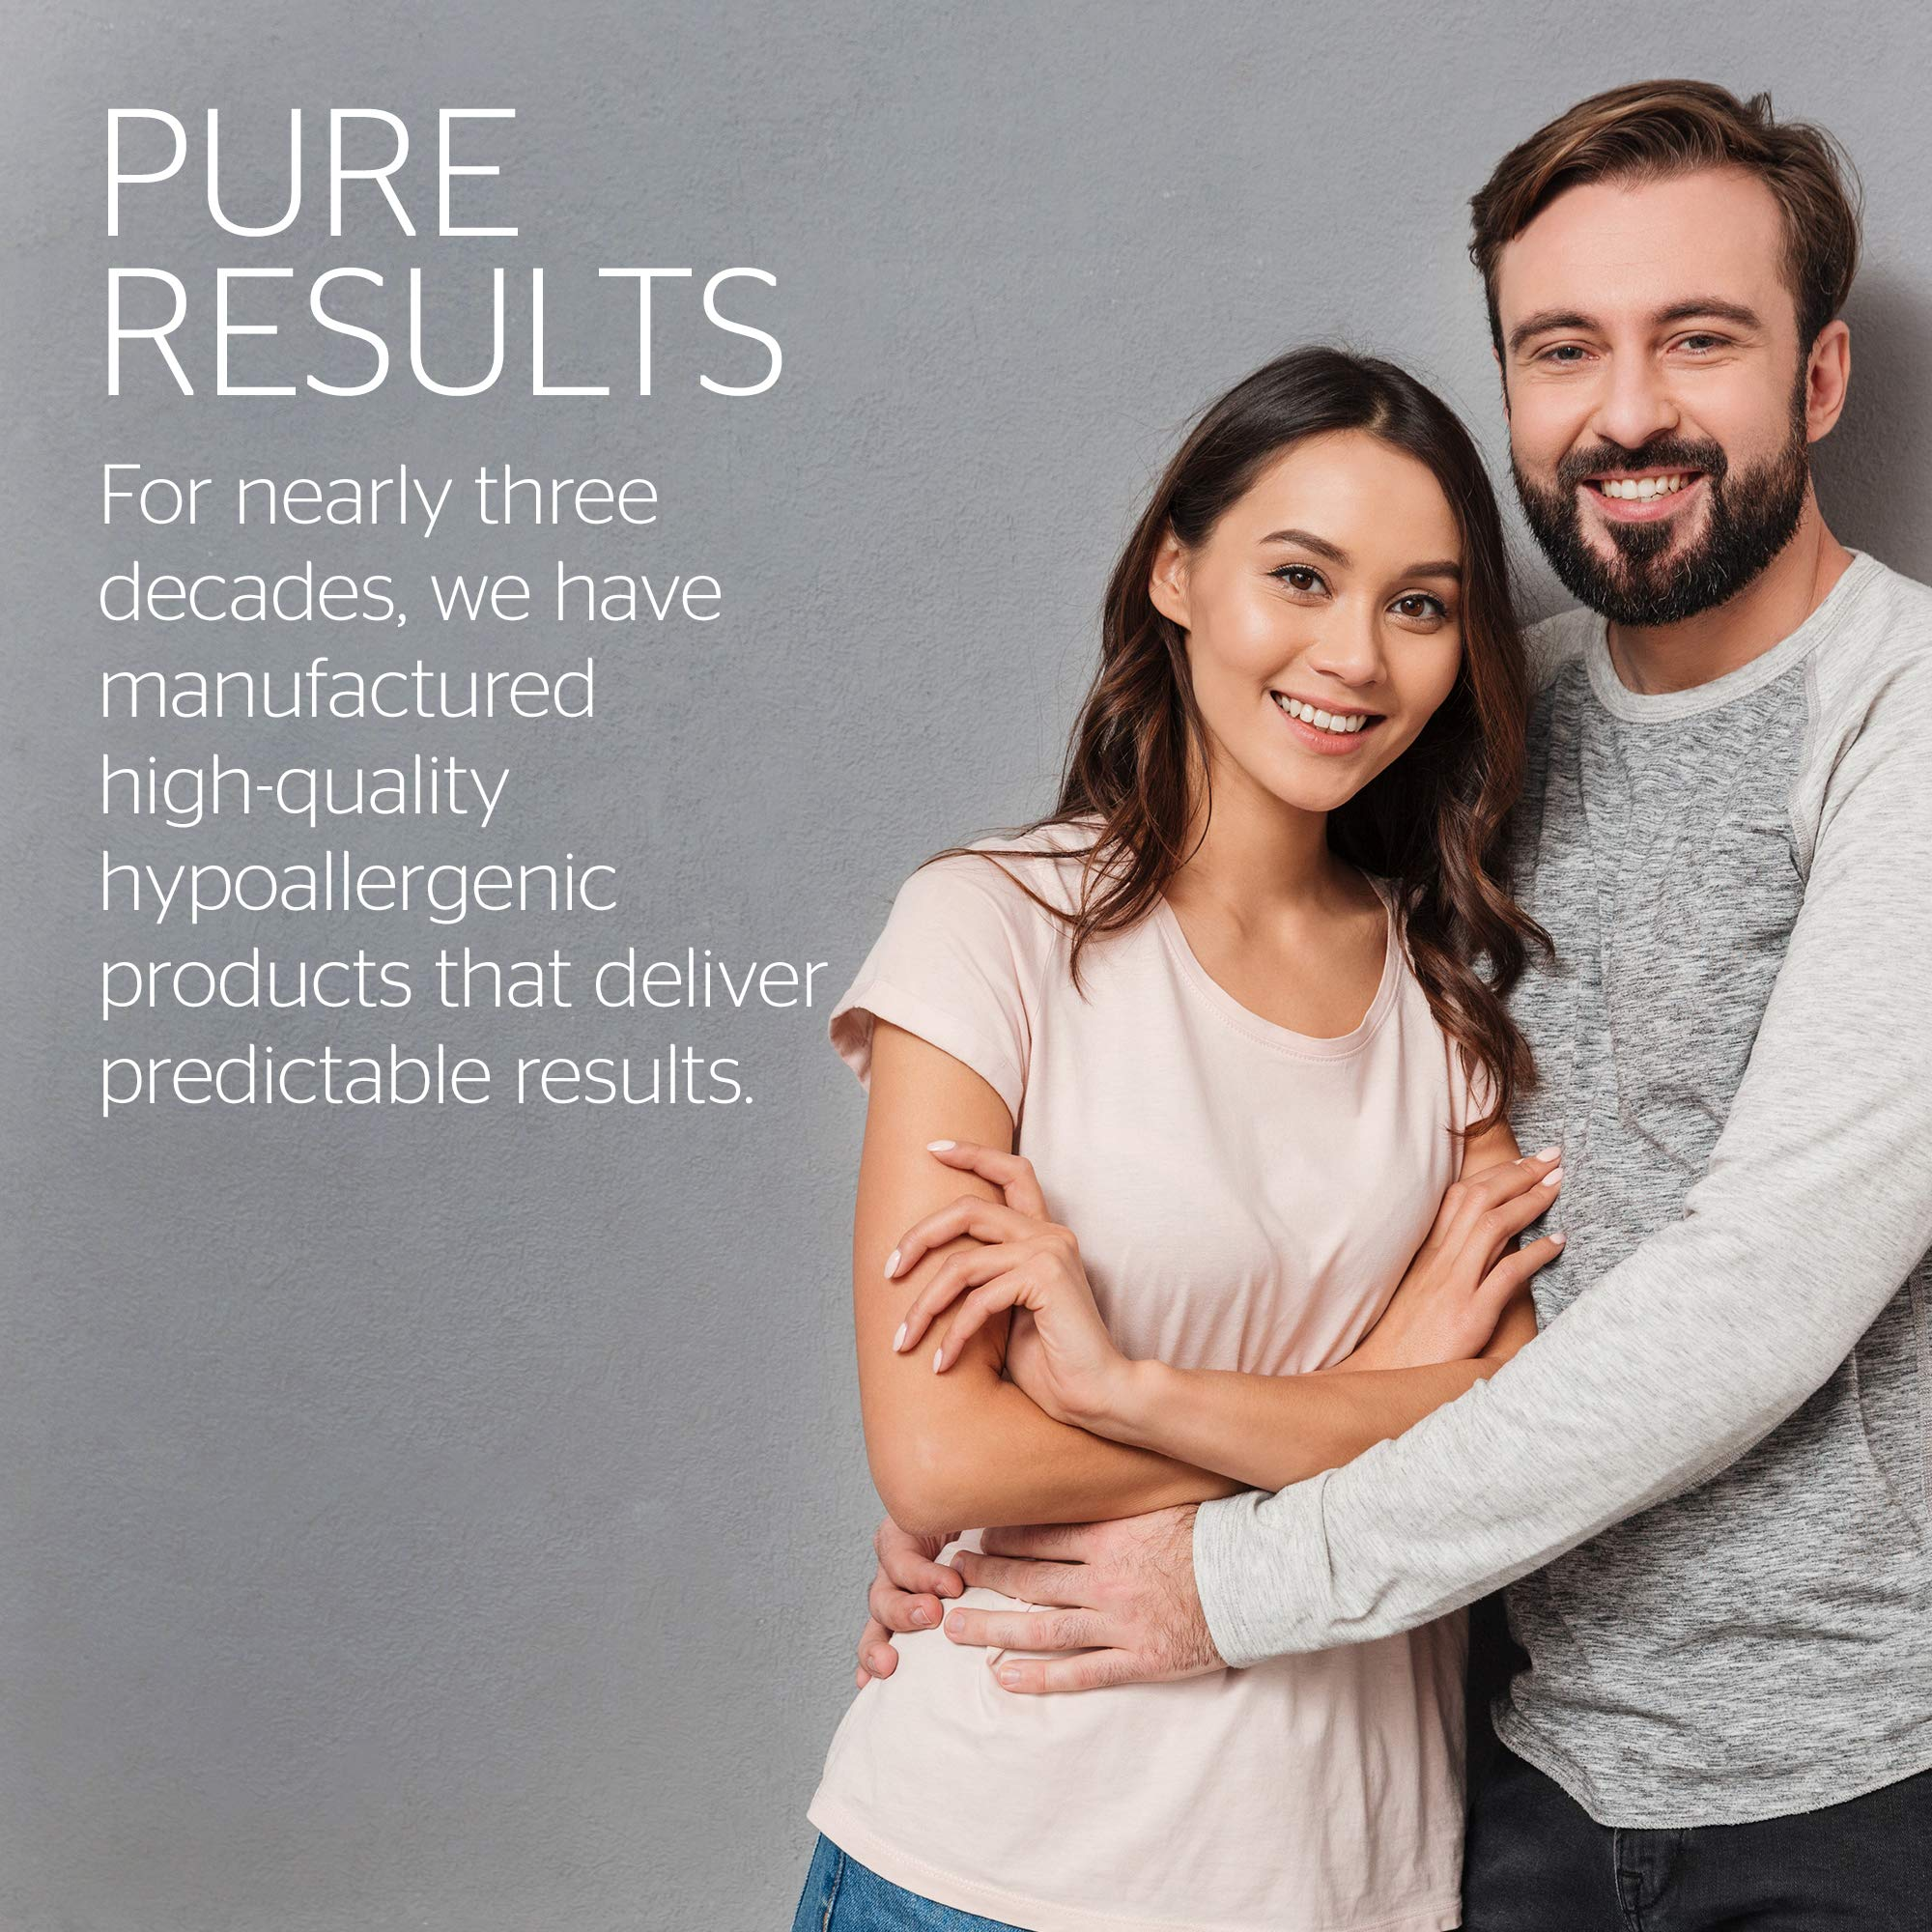 Pure Encapsulations - Cortisol Calm - Hypoallergenic Supplement to Maintain Healthy Cortisol Levels* - 120 Capsules by Pure Encapsulations (Image #9)